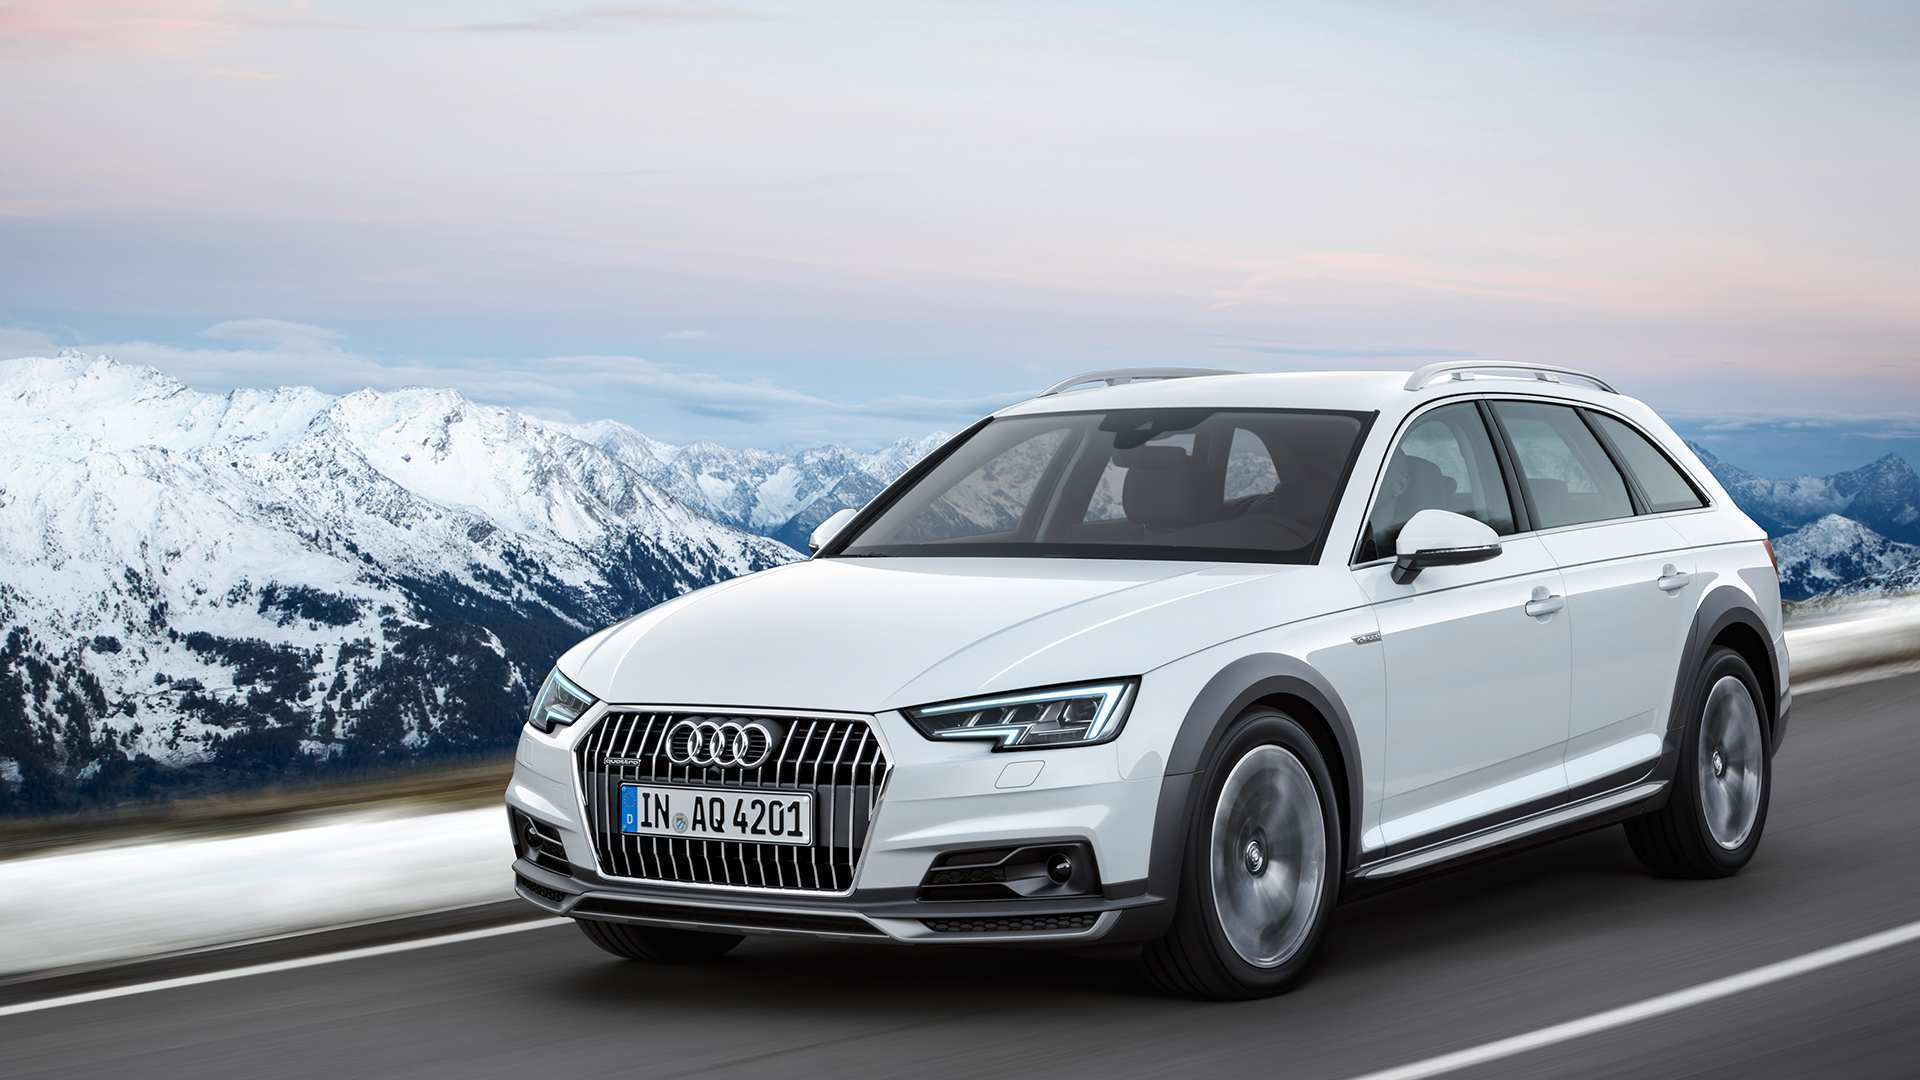 60 The Best 2020 Audi Allroad Style